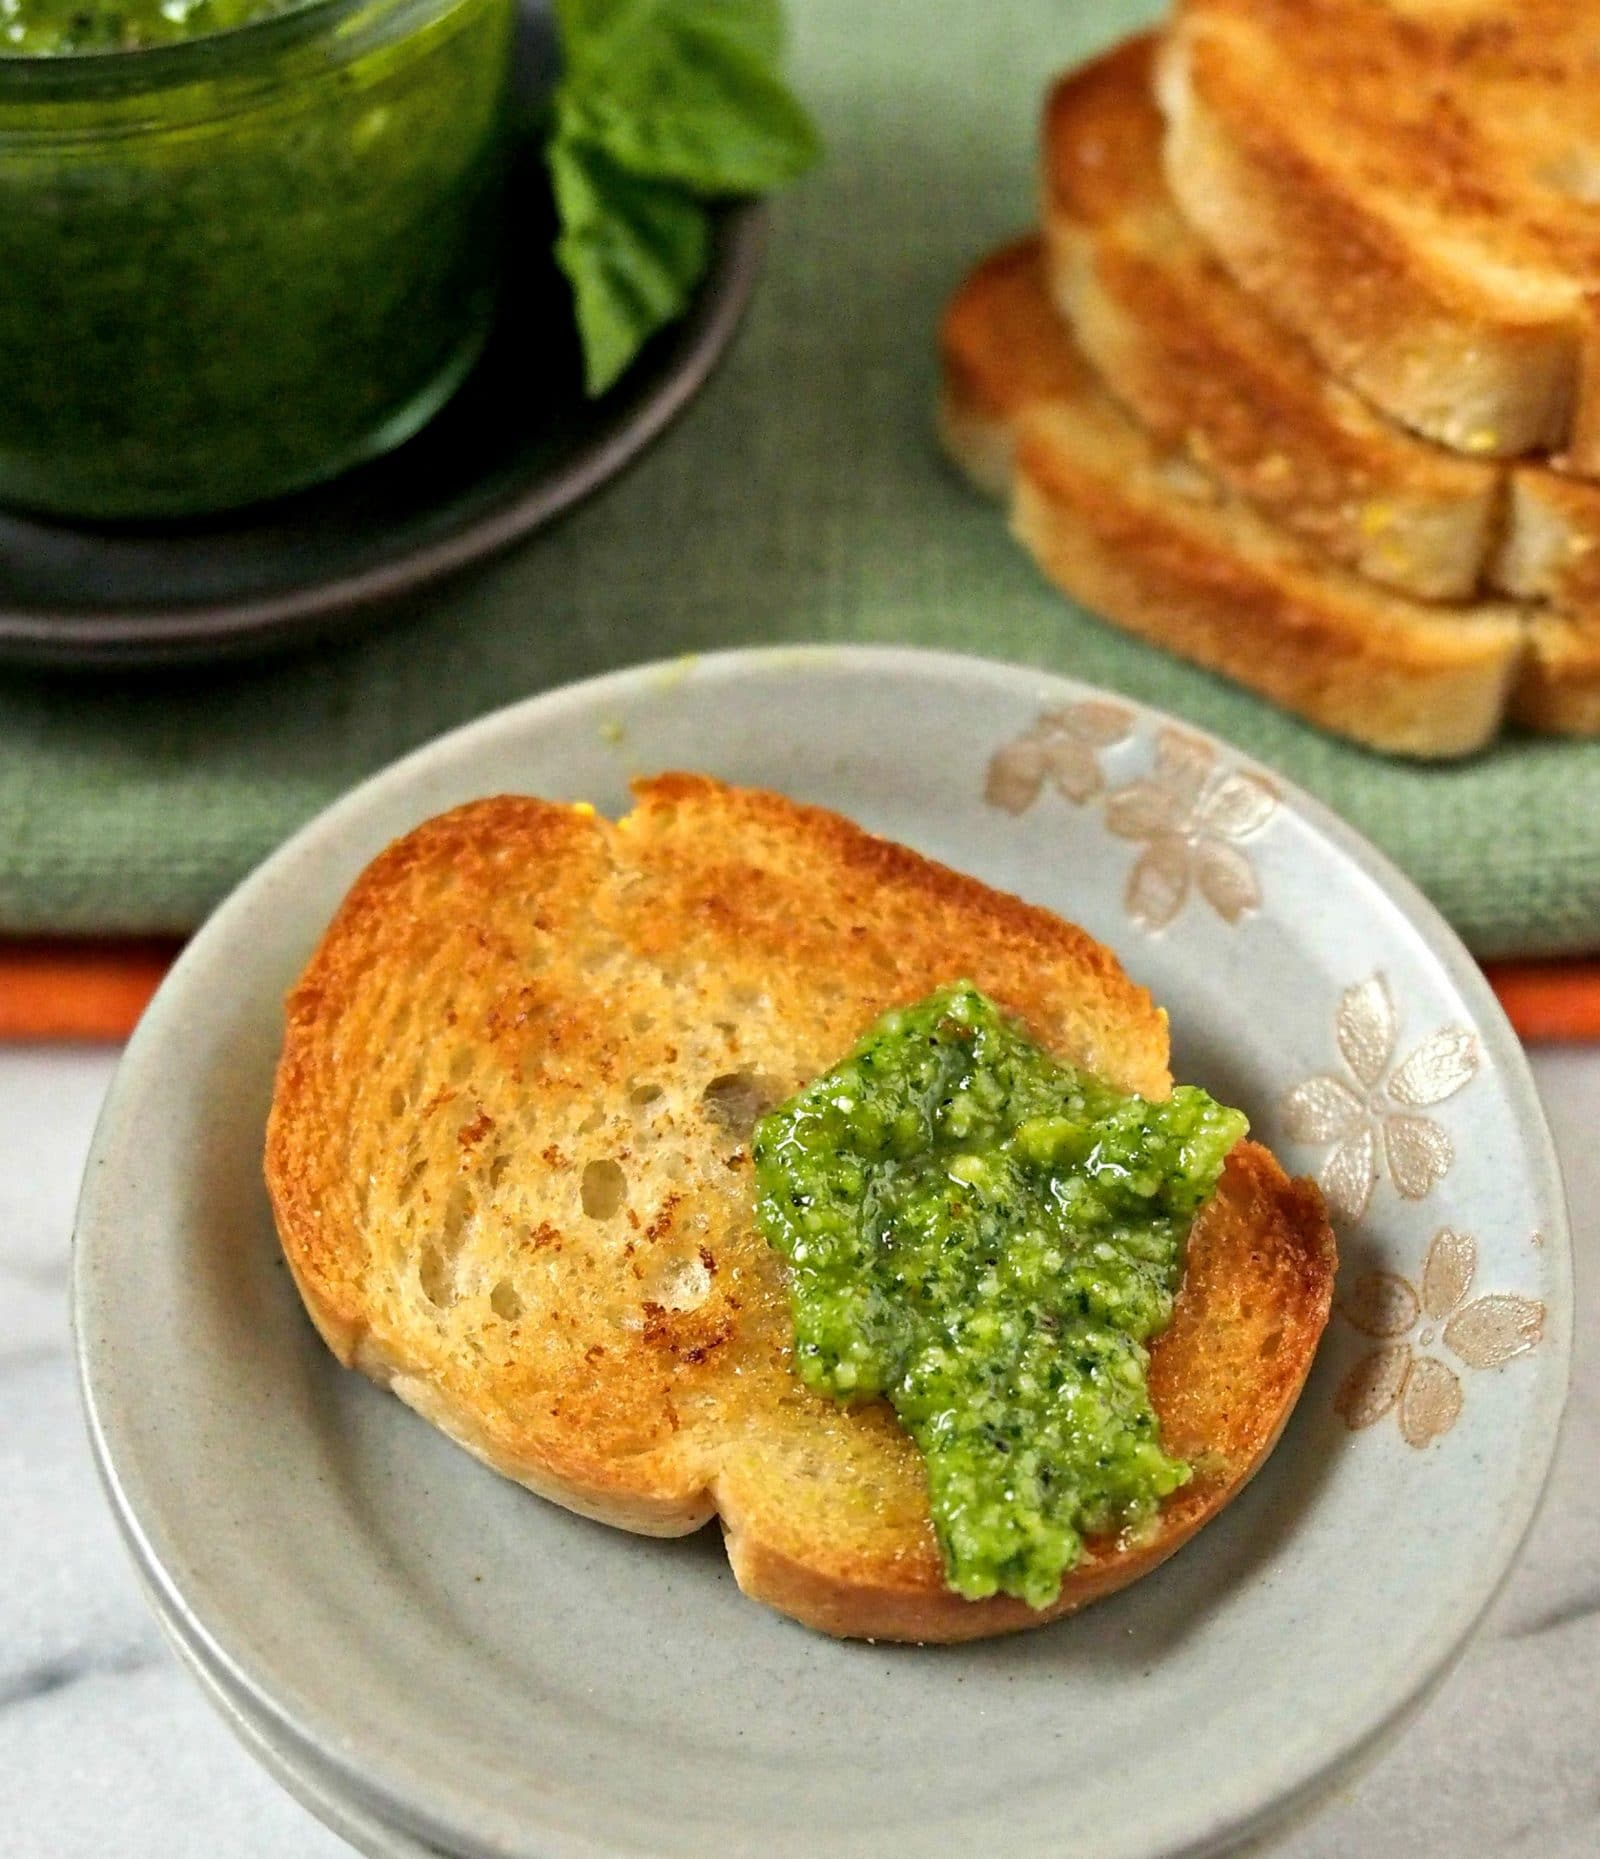 Basic Pesto. The perfect pesto recipe to use as the base to create your favorite pesto - just substitute other greens, nuts, cheeses and seasonings. Simply Sated